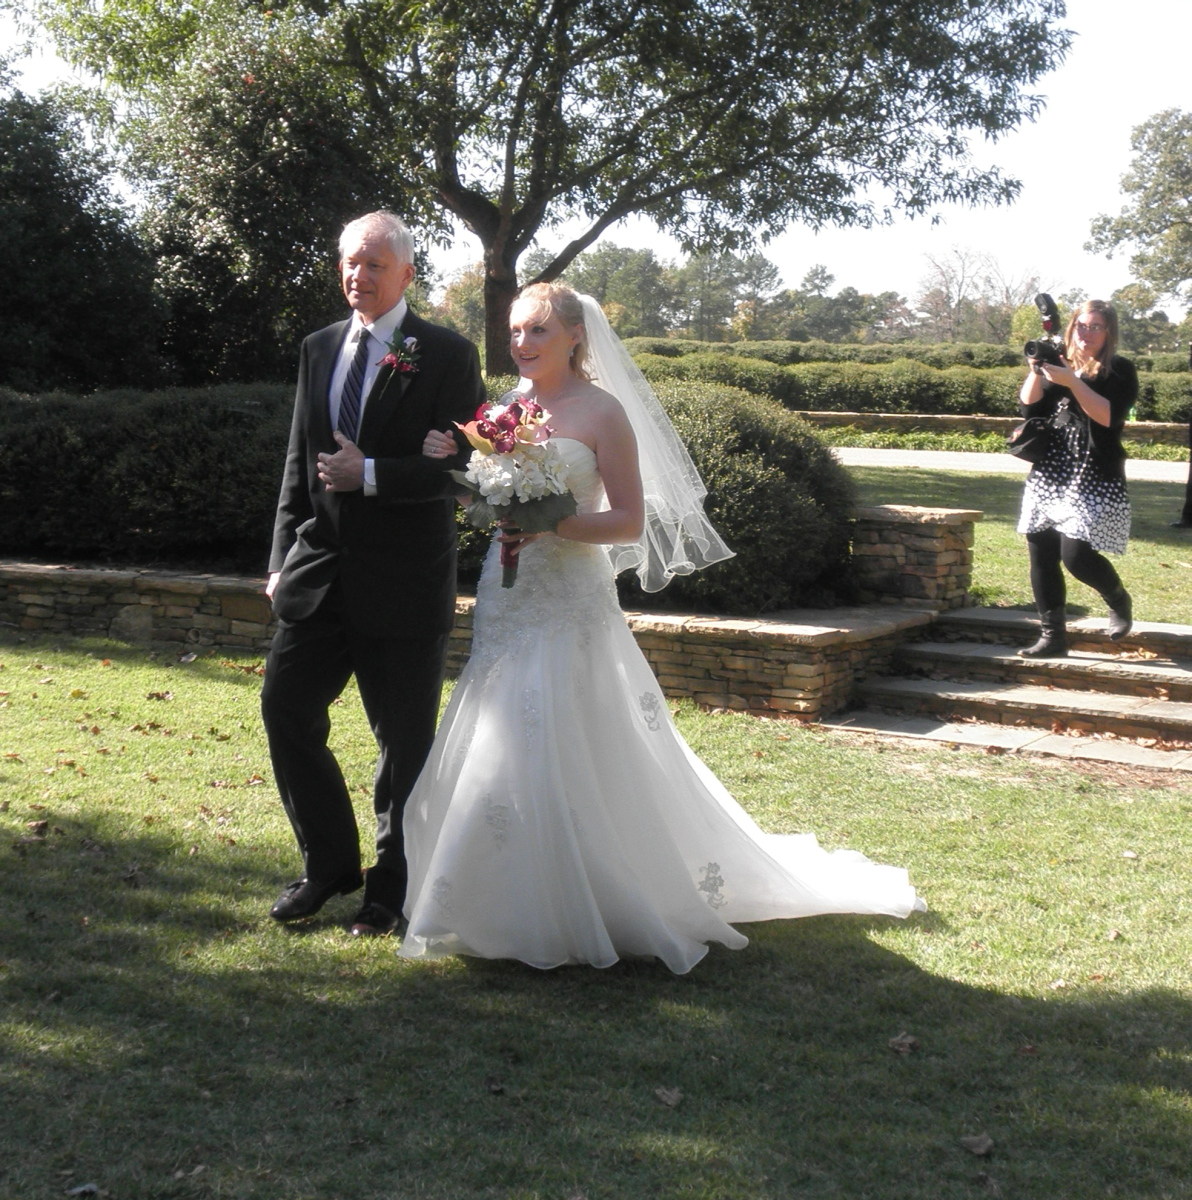 10 Instrumental Songs For Walking Down The Aisle: Raleigh Wedding Blog: Ten Tips For Walking Down The Aisle